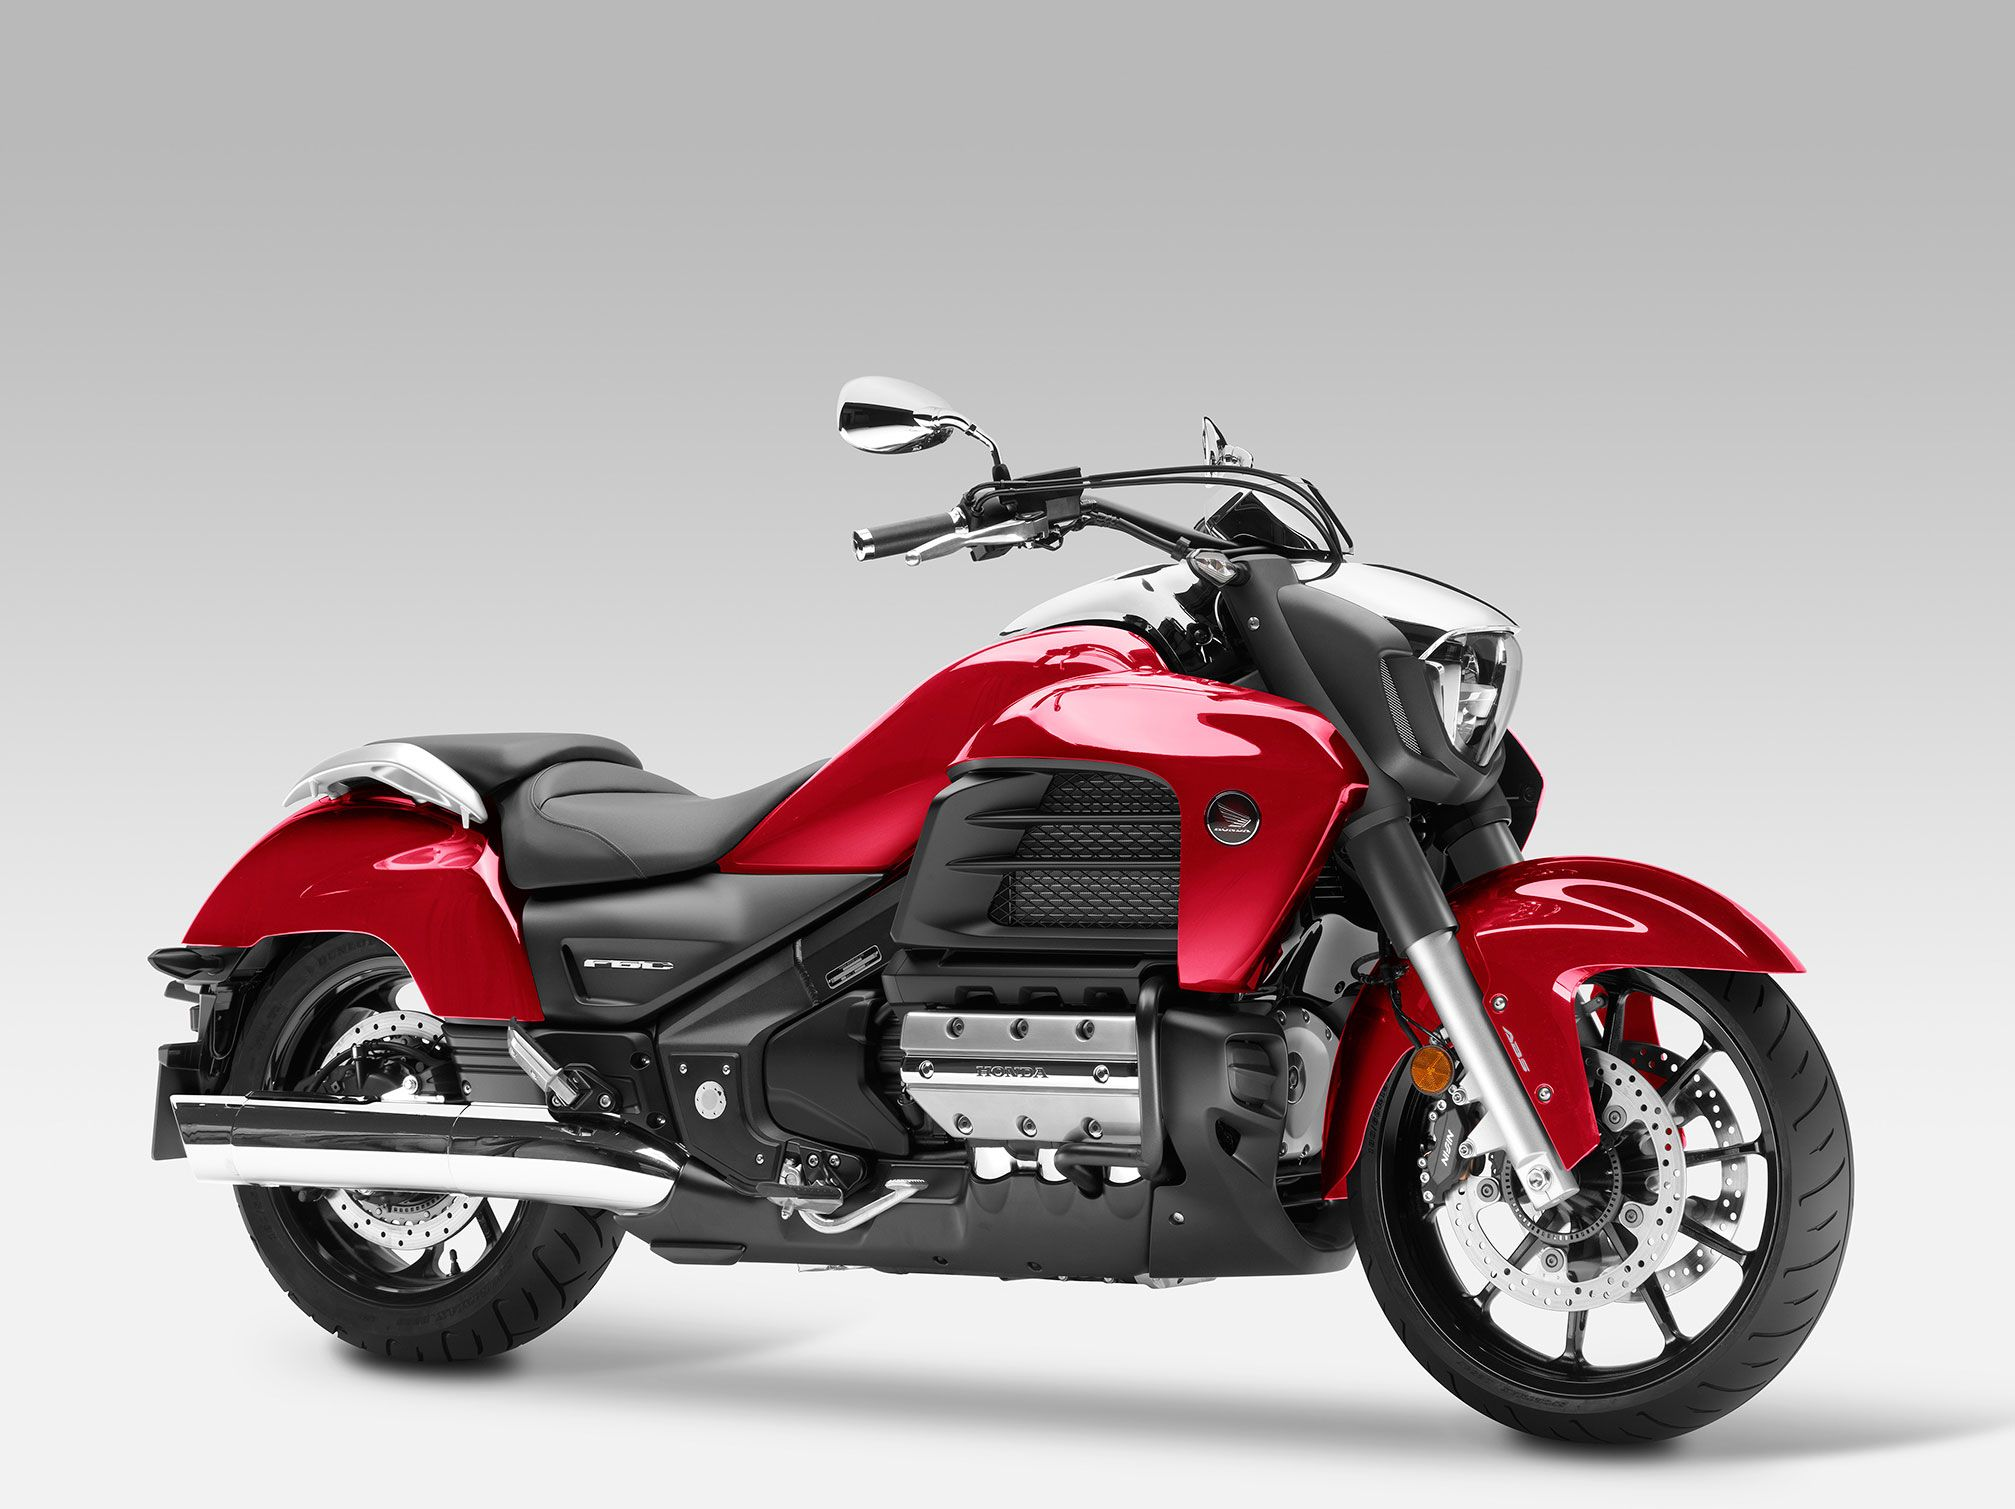 2017 Honda Goldwing F6c Valkyrie Price Starting At 17 999 14 472